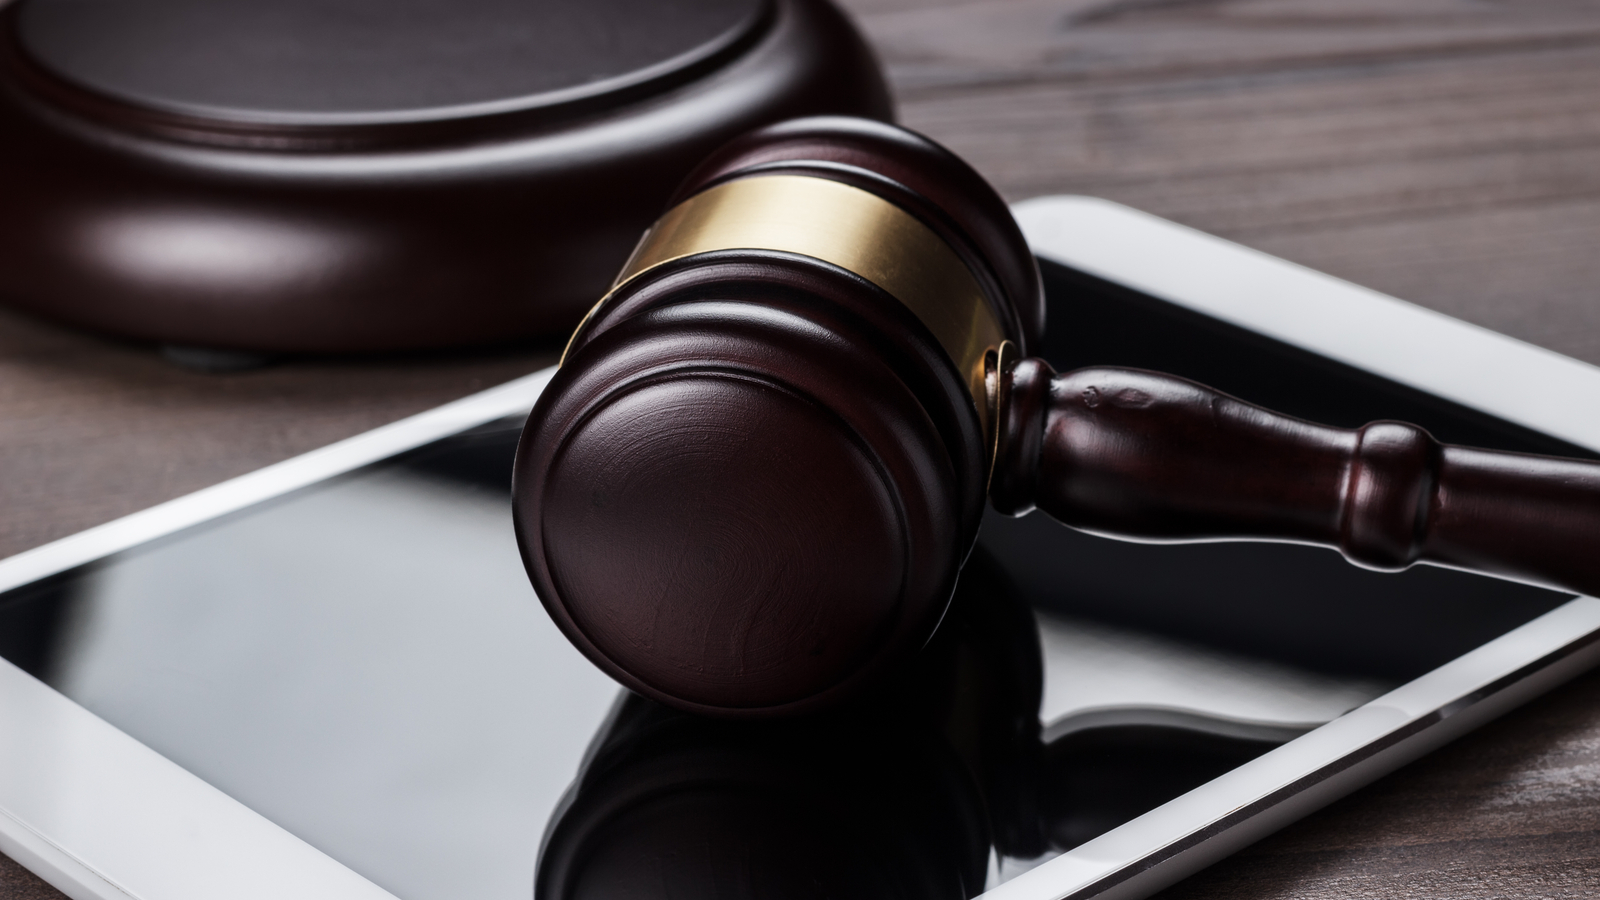 Image showing a tablet and gavel. Learn how electronic signatures are court admissible with audit trails.